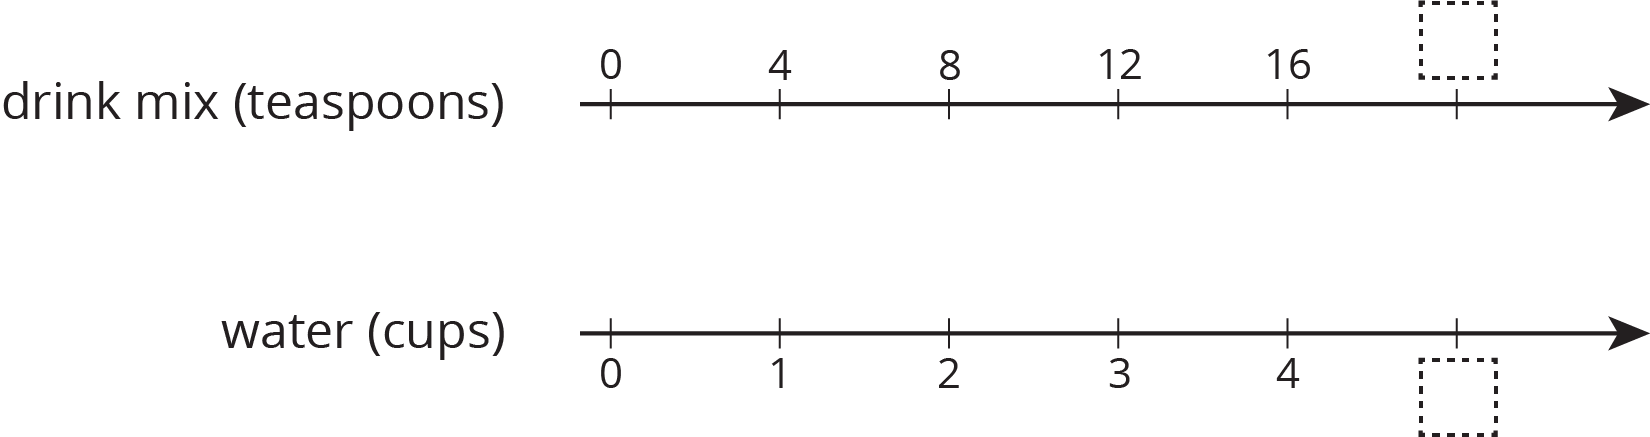 "A double number line with 6 evenly spaced tick marks. The top number line is labeled ""Salt, in teaspoons"" and the numbers 0, 4, 8, 12, and 16 are indicated. The last tick mark is blank. The bottom number line is labeled ""Water, in cups"" and the numbers 0, 1, 2, 3, 4 are indicated. The last tick mark is blank."